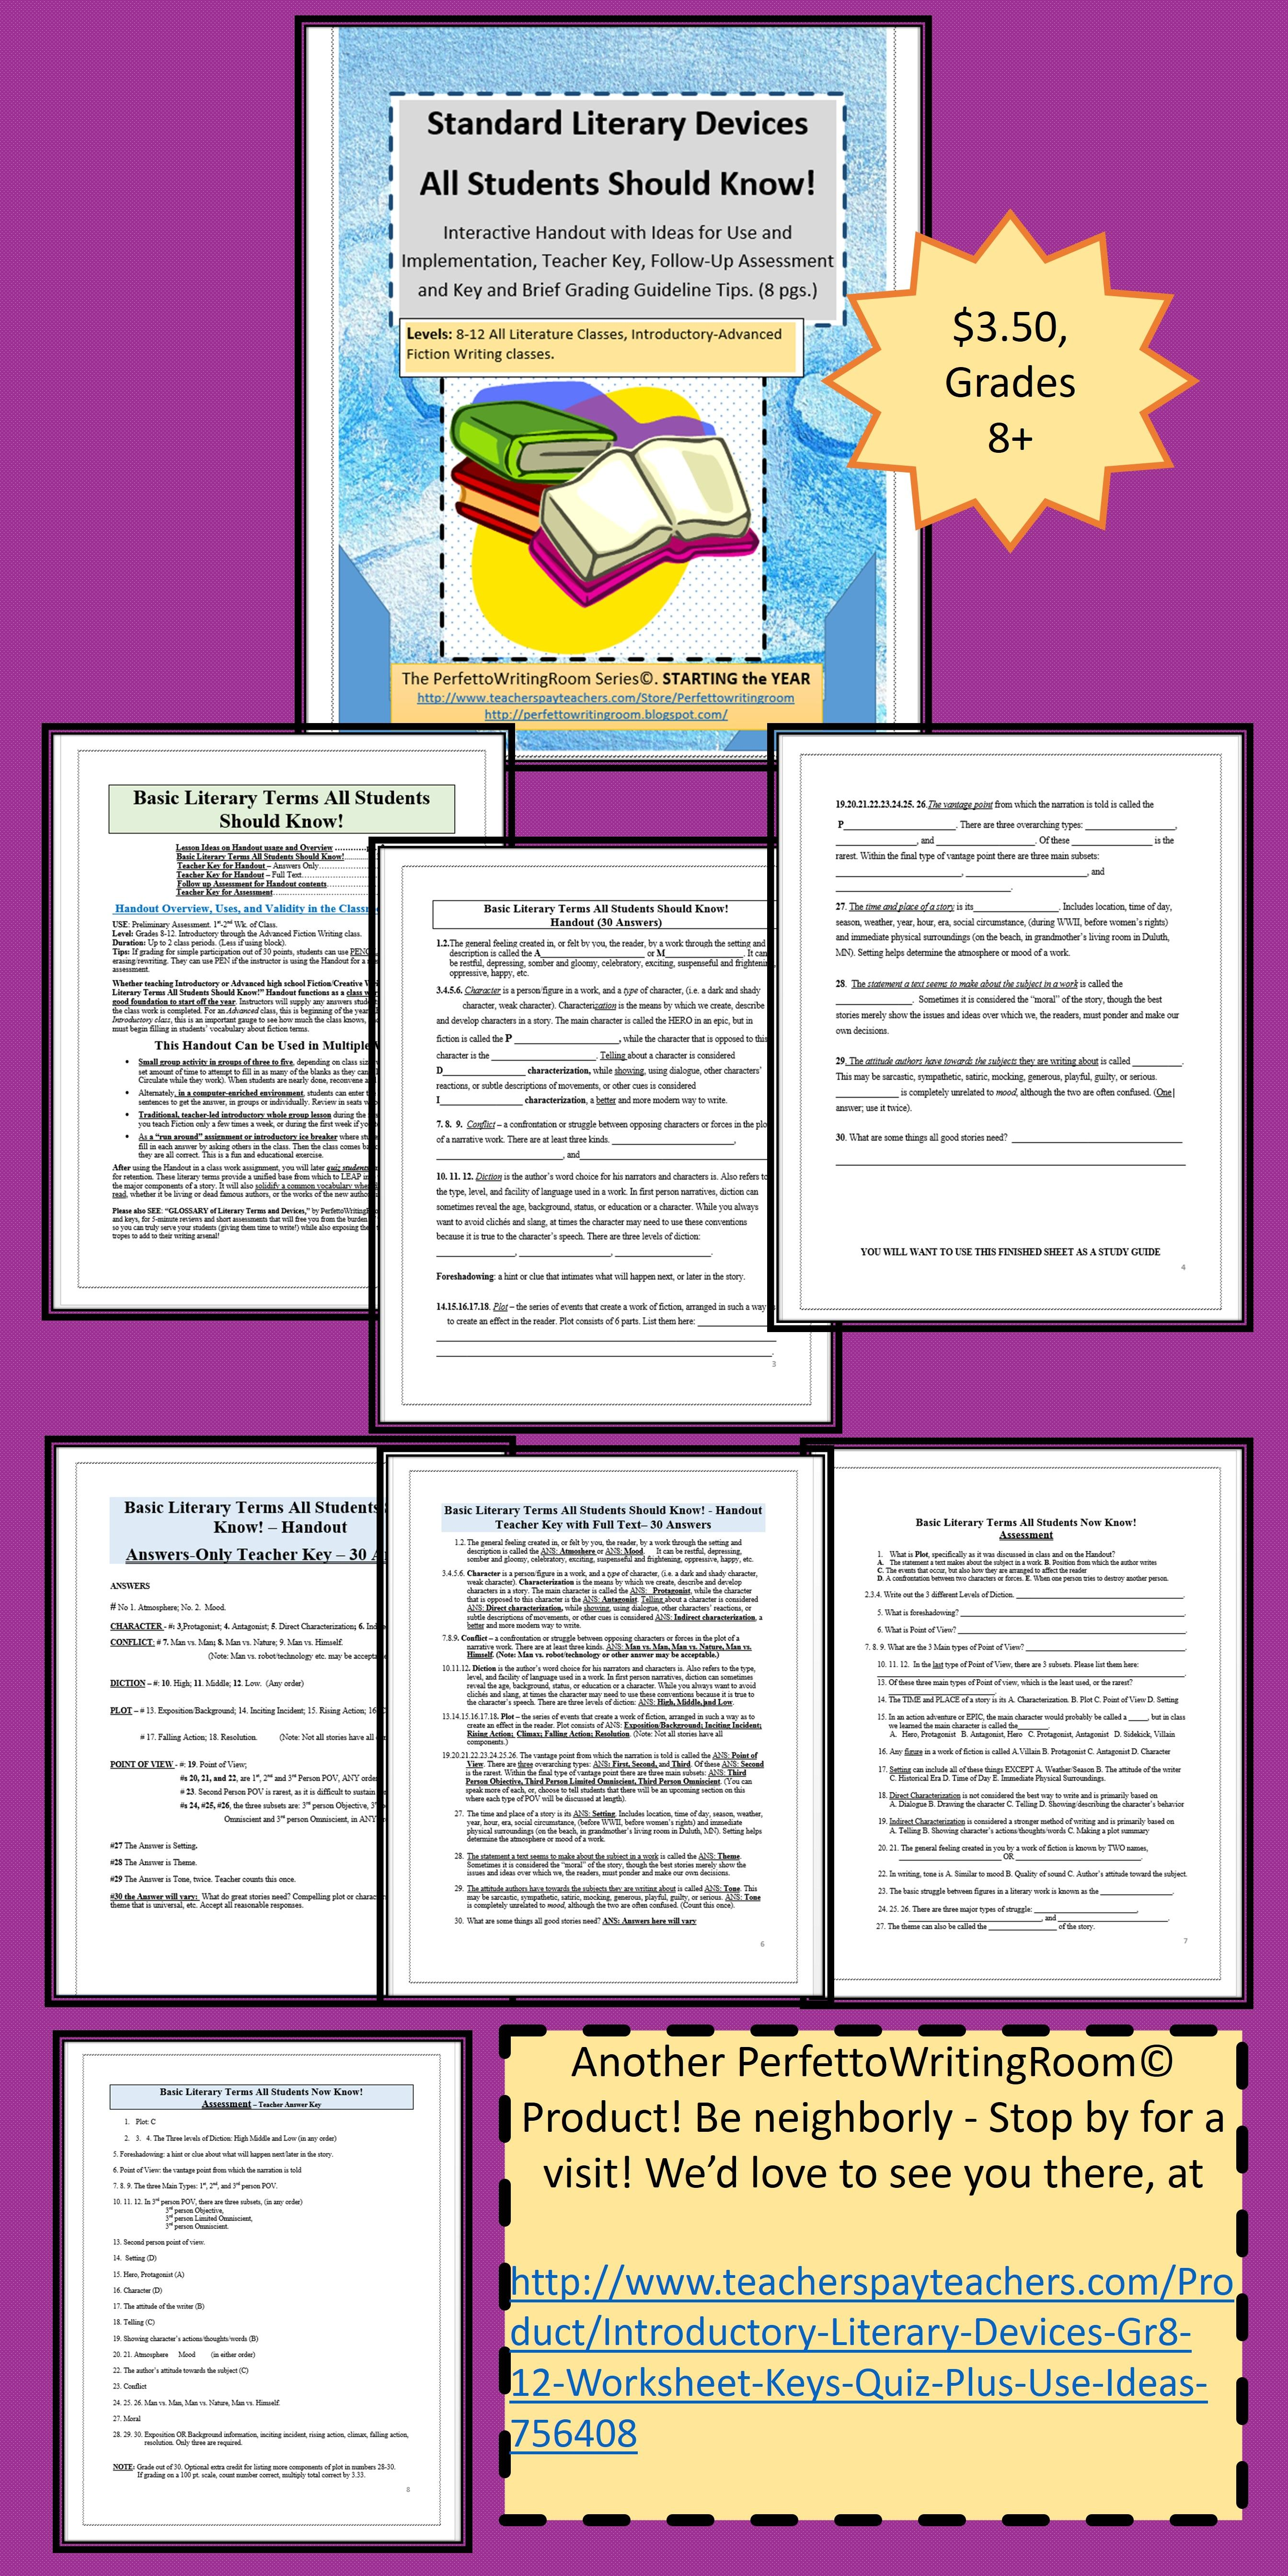 small resolution of Introductory Literary Devices- Gr.7-12 Worksheet; Keys